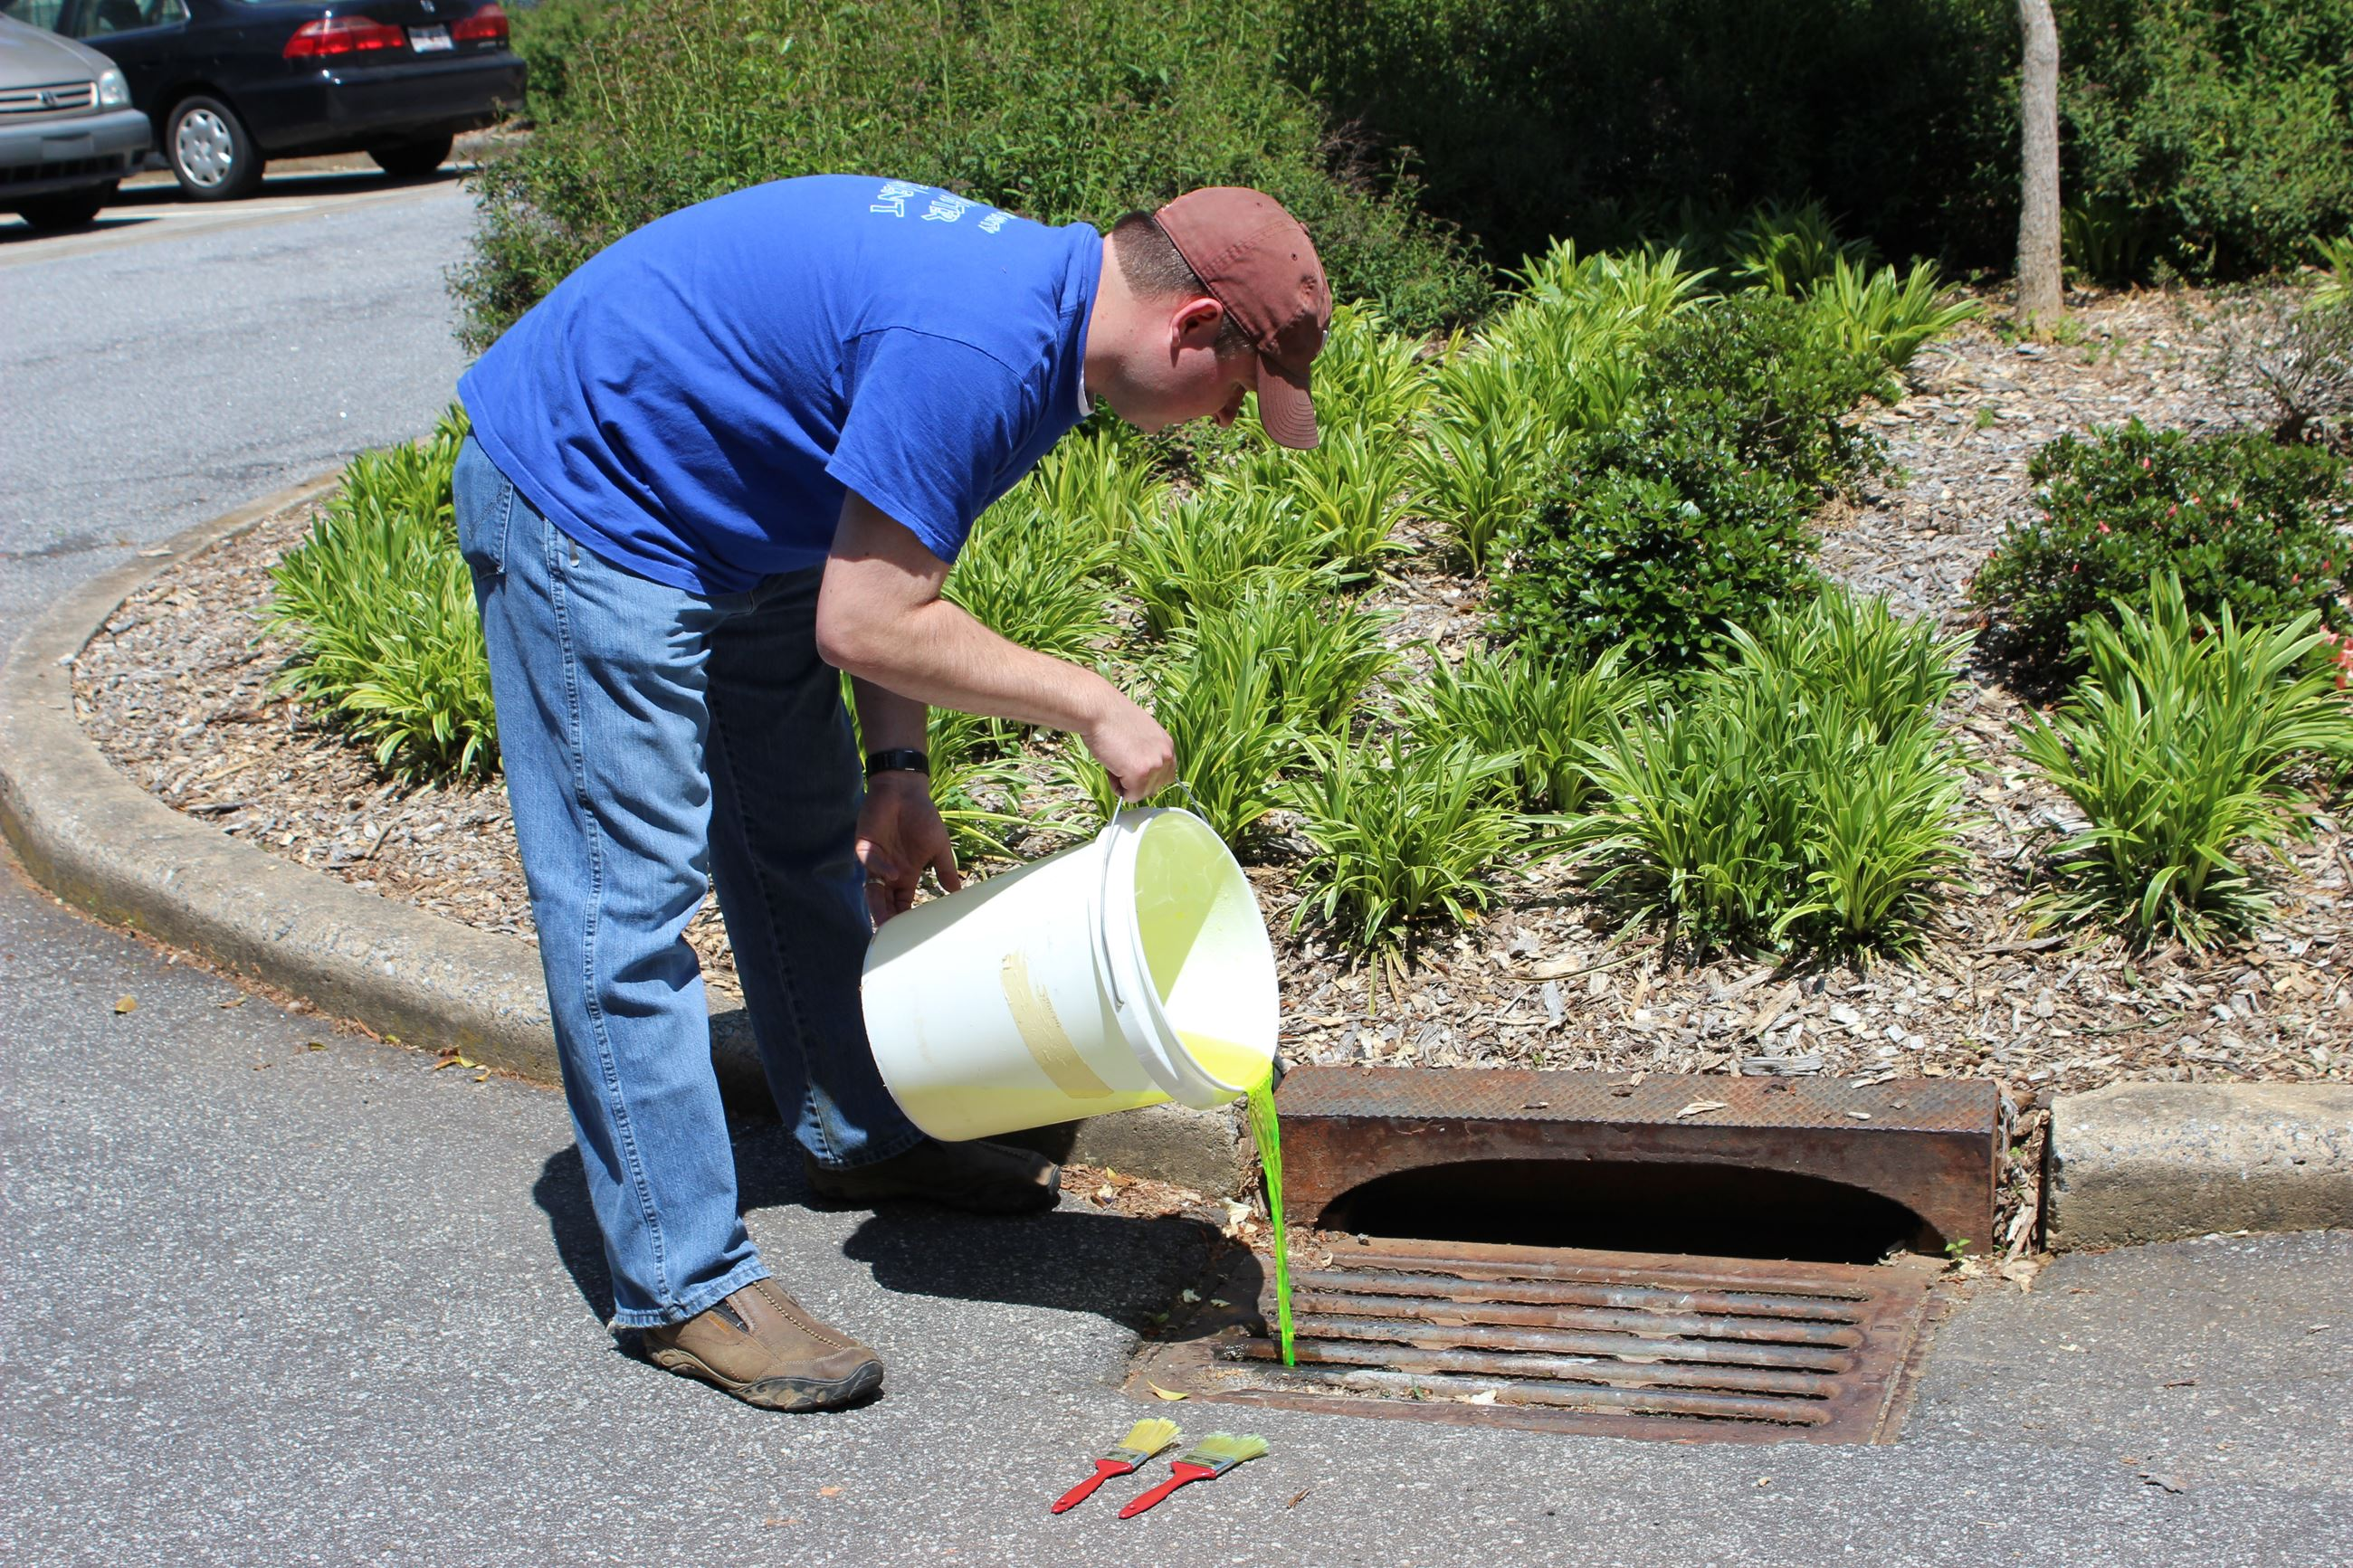 paint down storm drain illicit discharge